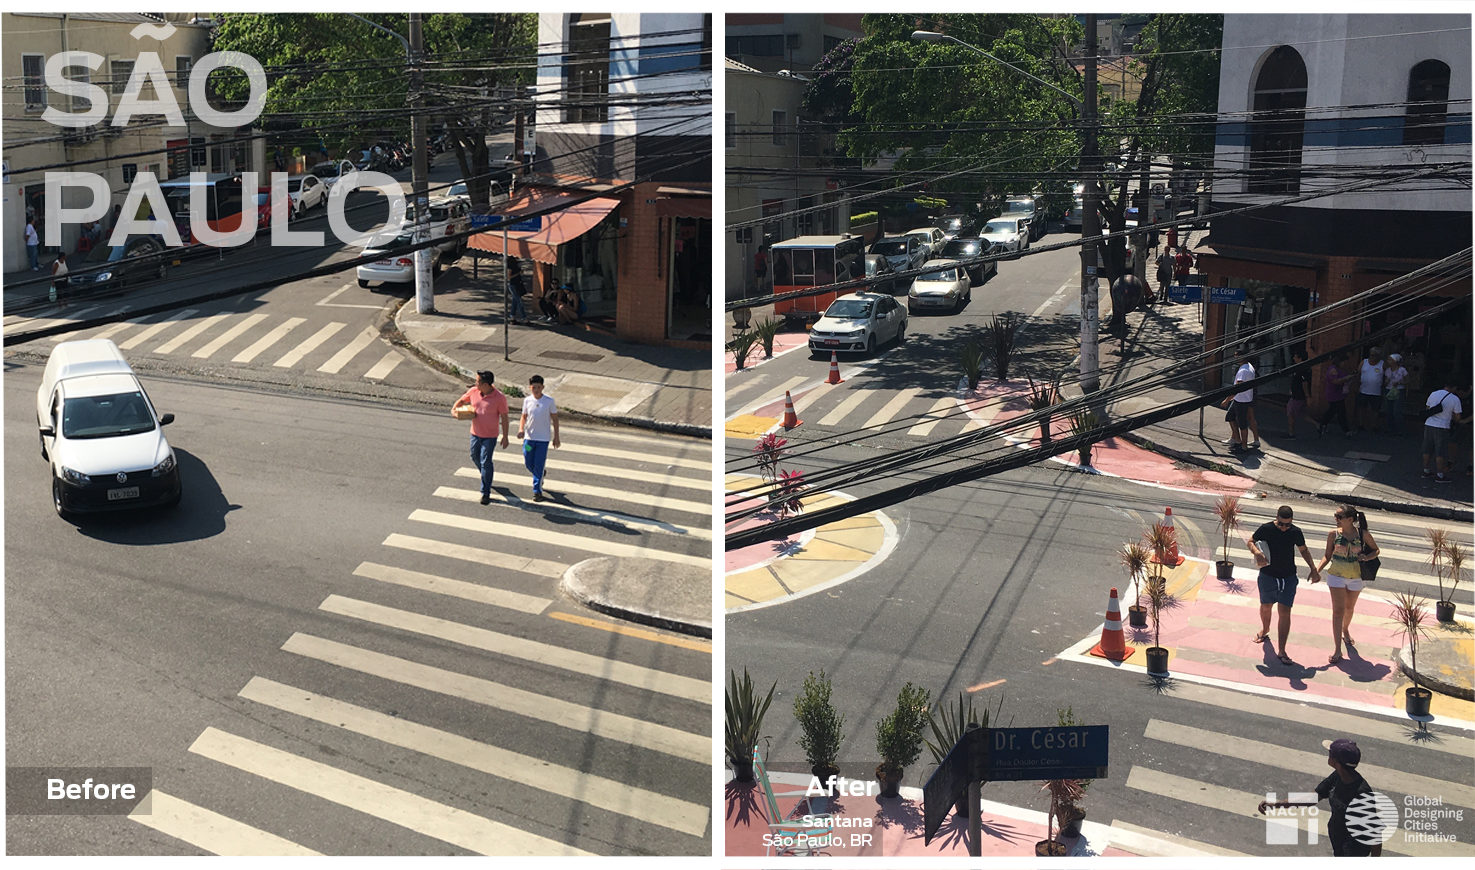 Image of an unsafe roundabout turned into a safer space for pedestrians